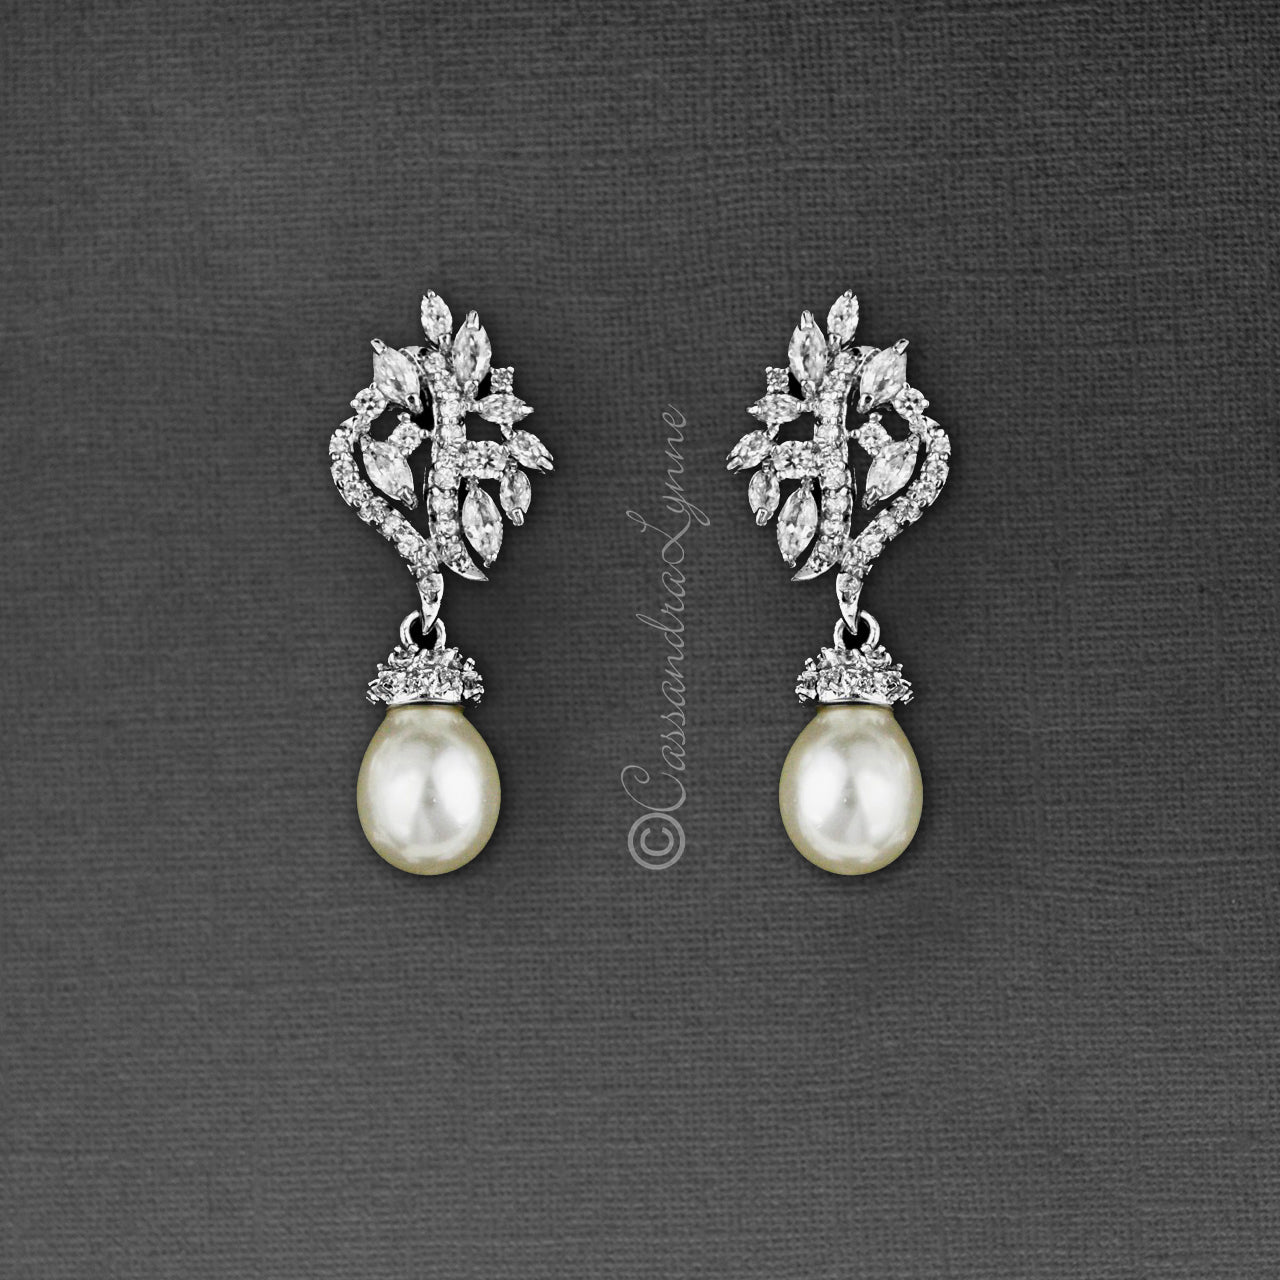 Pearl CZ Earring Drops with Marquise Vine Design